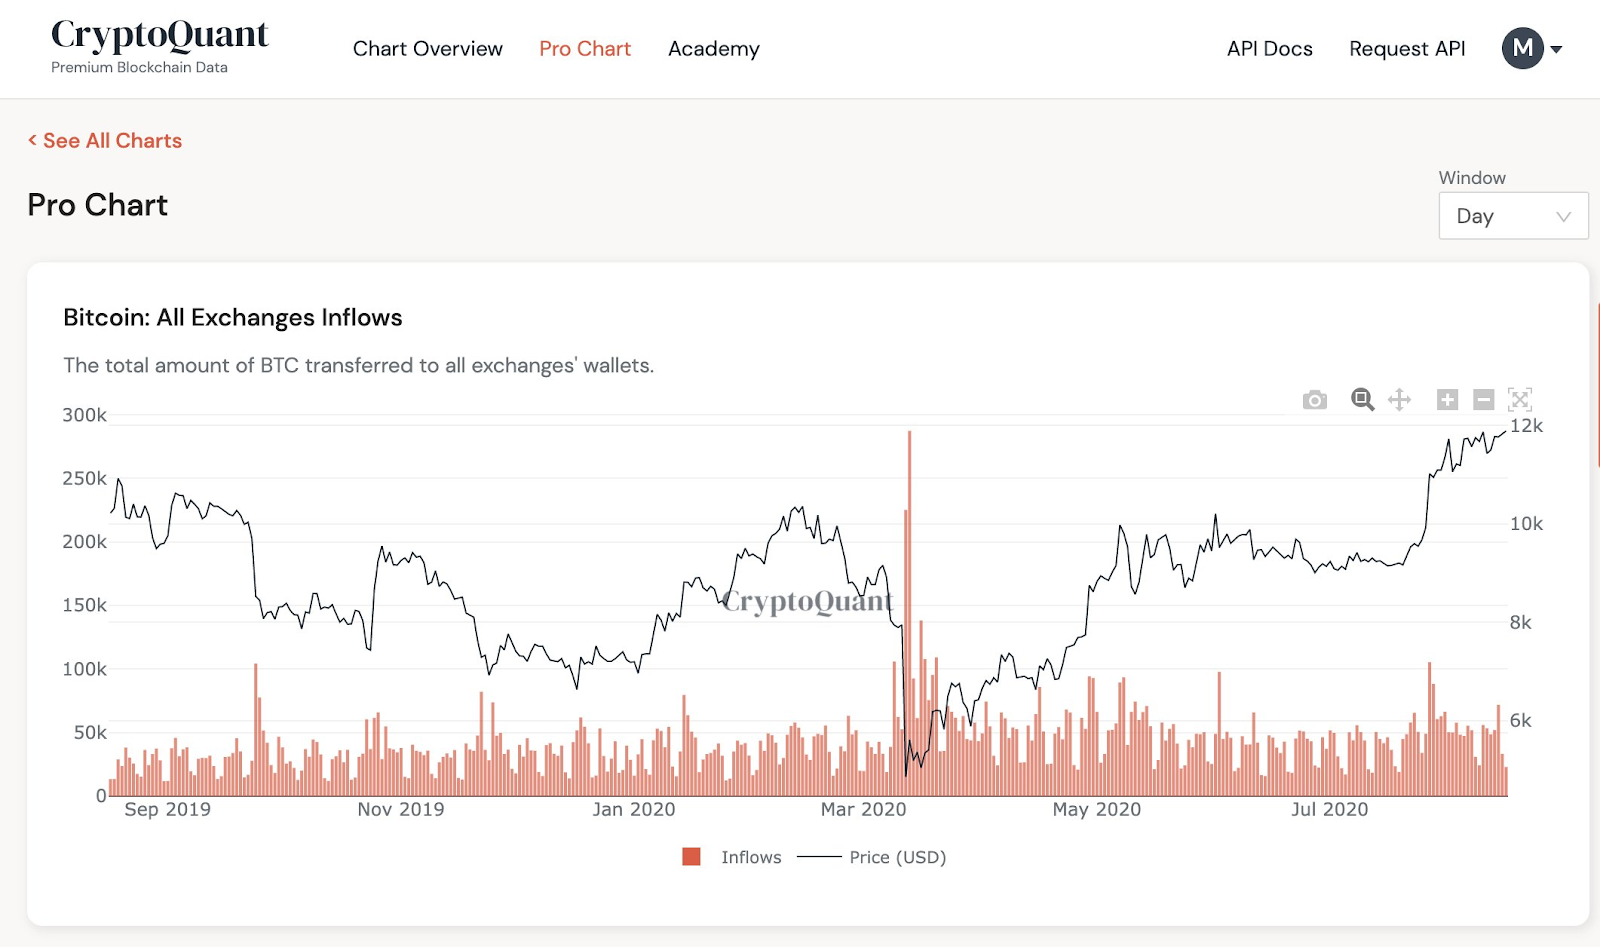 All Bitcoin Exchange Inflows